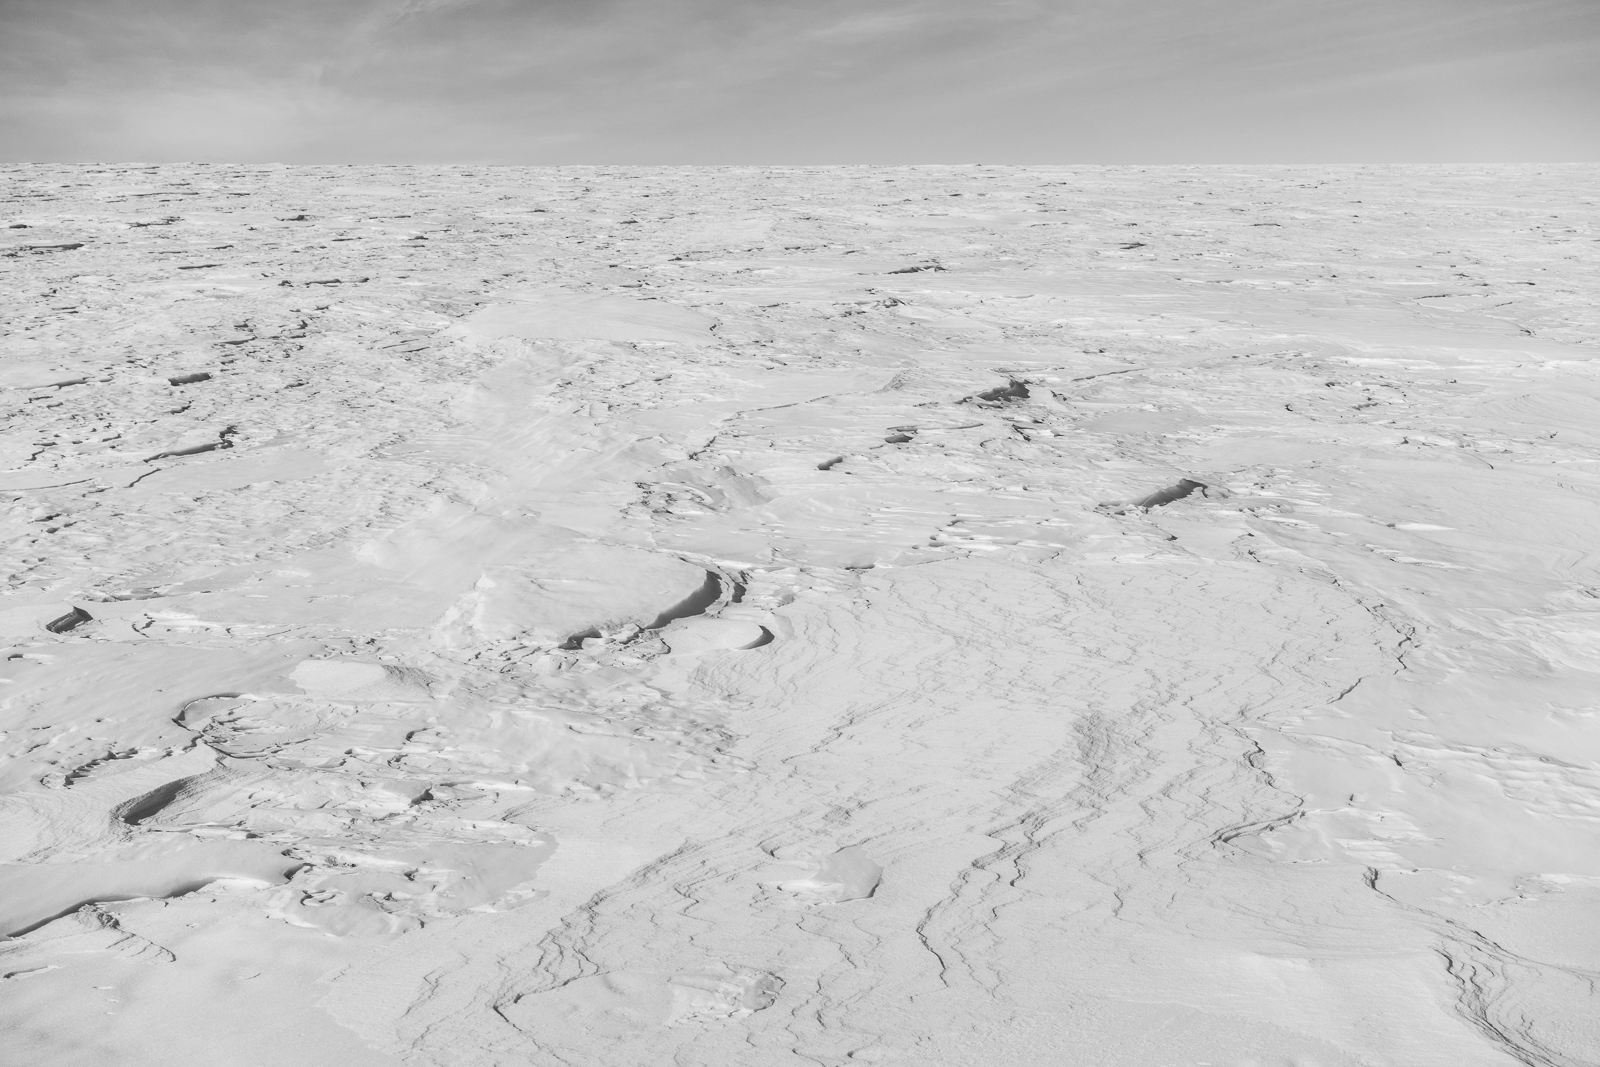 Surface of the Erebus Glacier, deceptively safe looking, but there are crevasses which get bridged over with snow but can give way when stepped on.